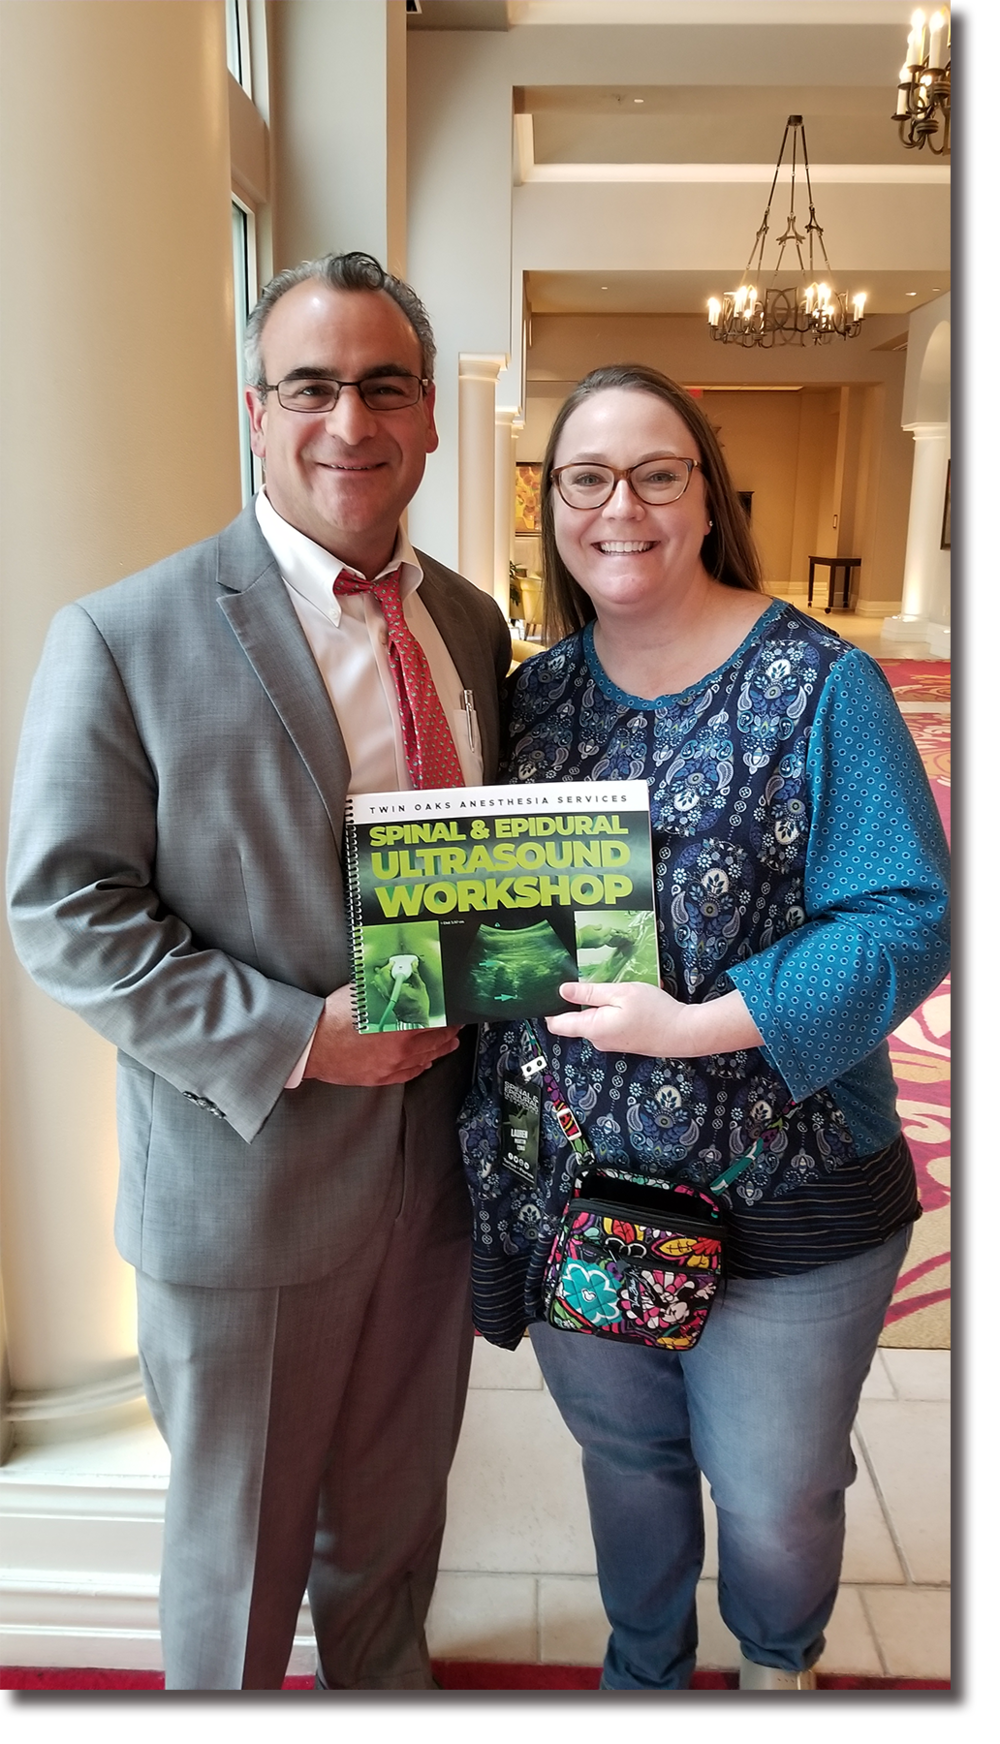 Lauren Martin - Jonathan Kline with 2018 winner, Lauren Martin, at our Spinal & Epidural Ultrasound Workshop in Tampa. She won a free course and this is where her and her husband (also a CRNA) chose to come. Congratulations!